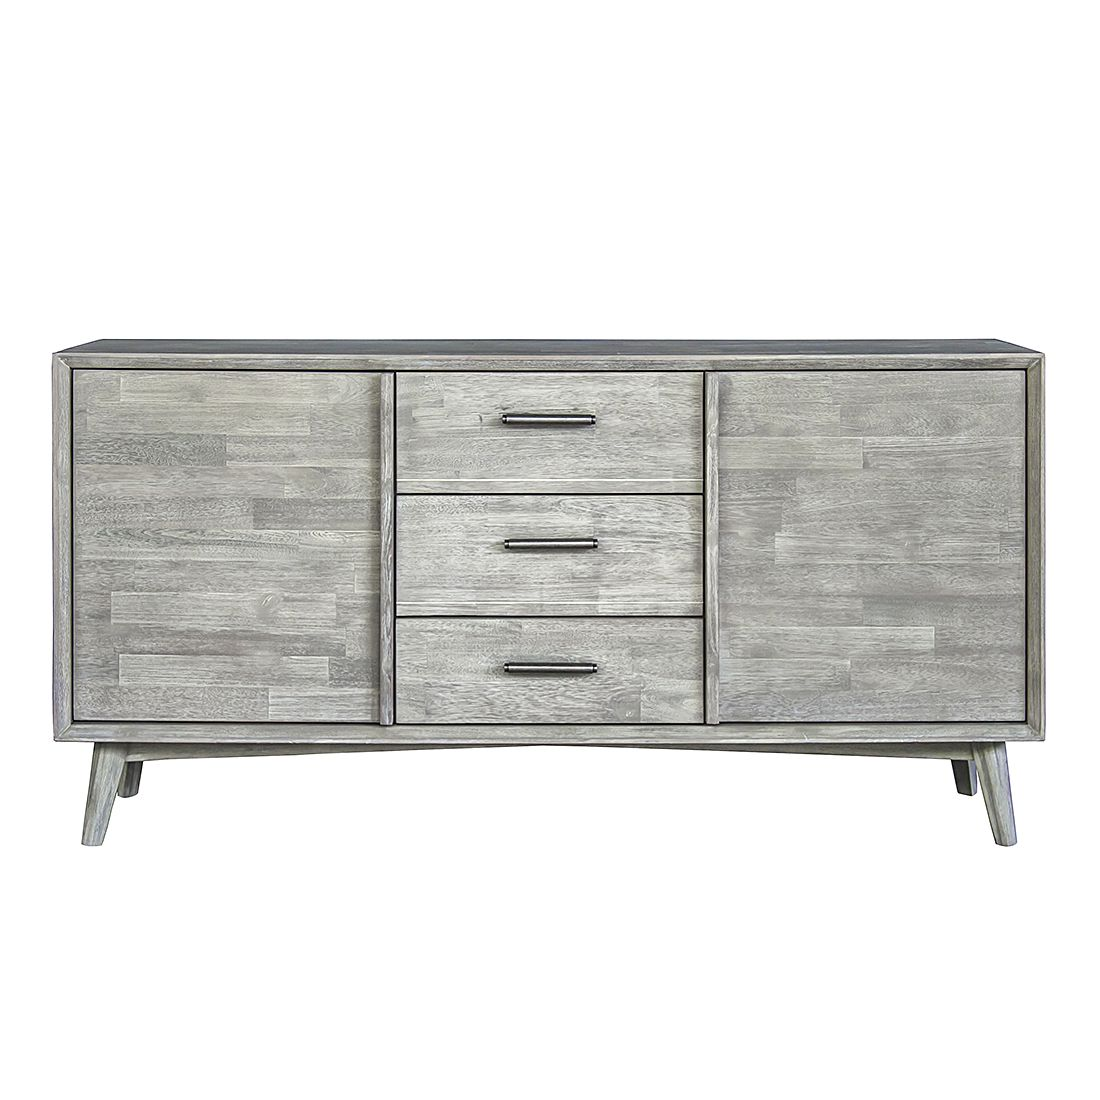 sideboard yomo akazie teilmassiv m rteens g nstig. Black Bedroom Furniture Sets. Home Design Ideas